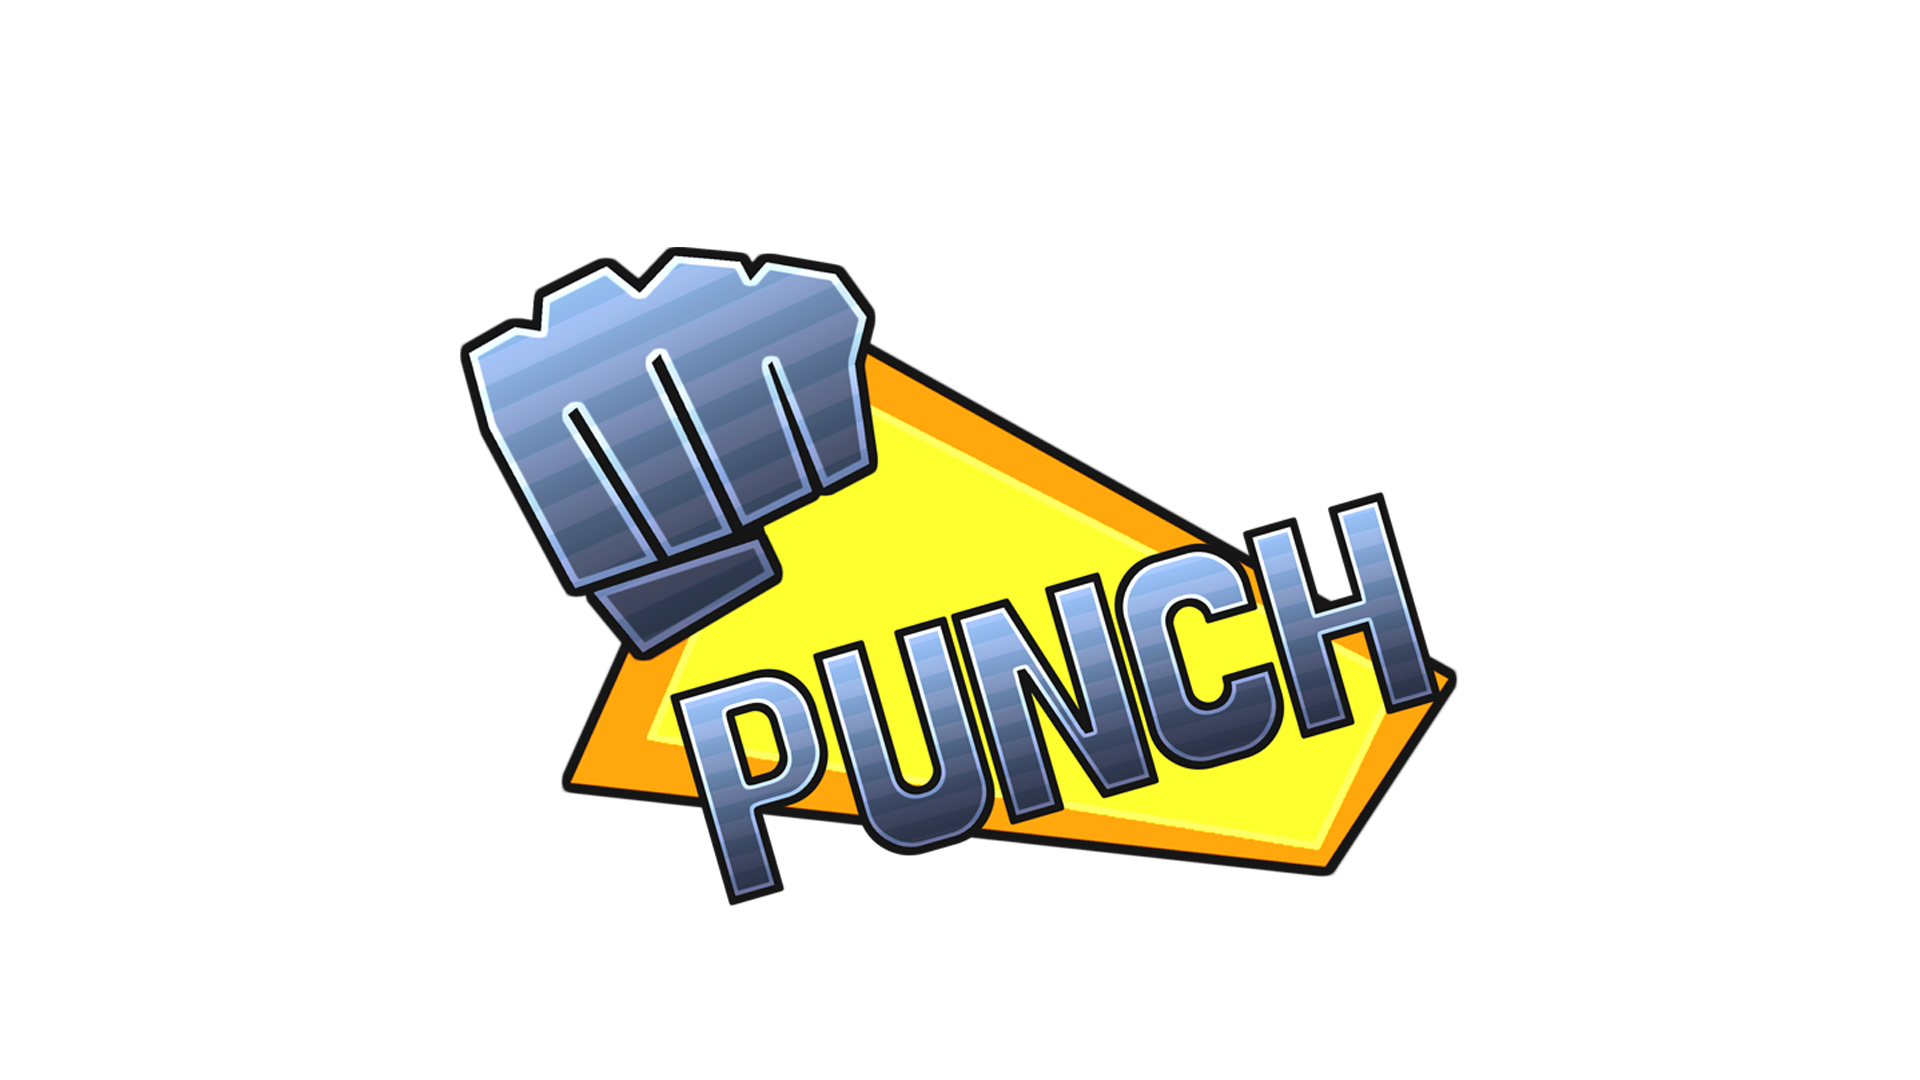 [Group06] PUNCH